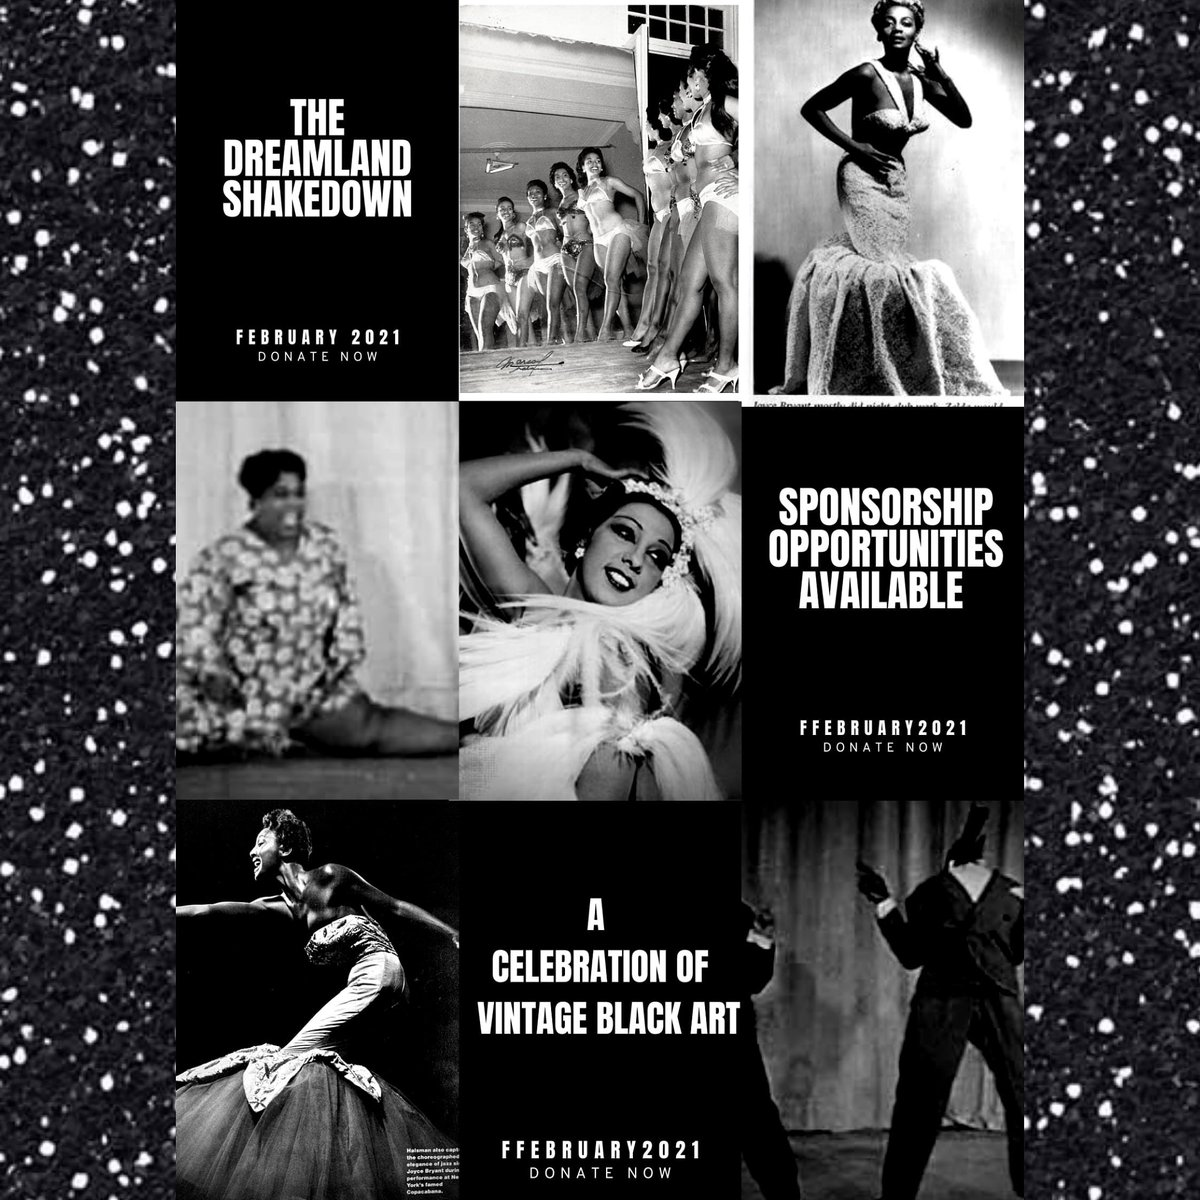 I can barely sleep at night bc I want this to be such a magical event #BlackHistoryMonth #BlackTwitter #BlackHistory #burlesque #vintage #pinup #blackculture #dreamlandballroom